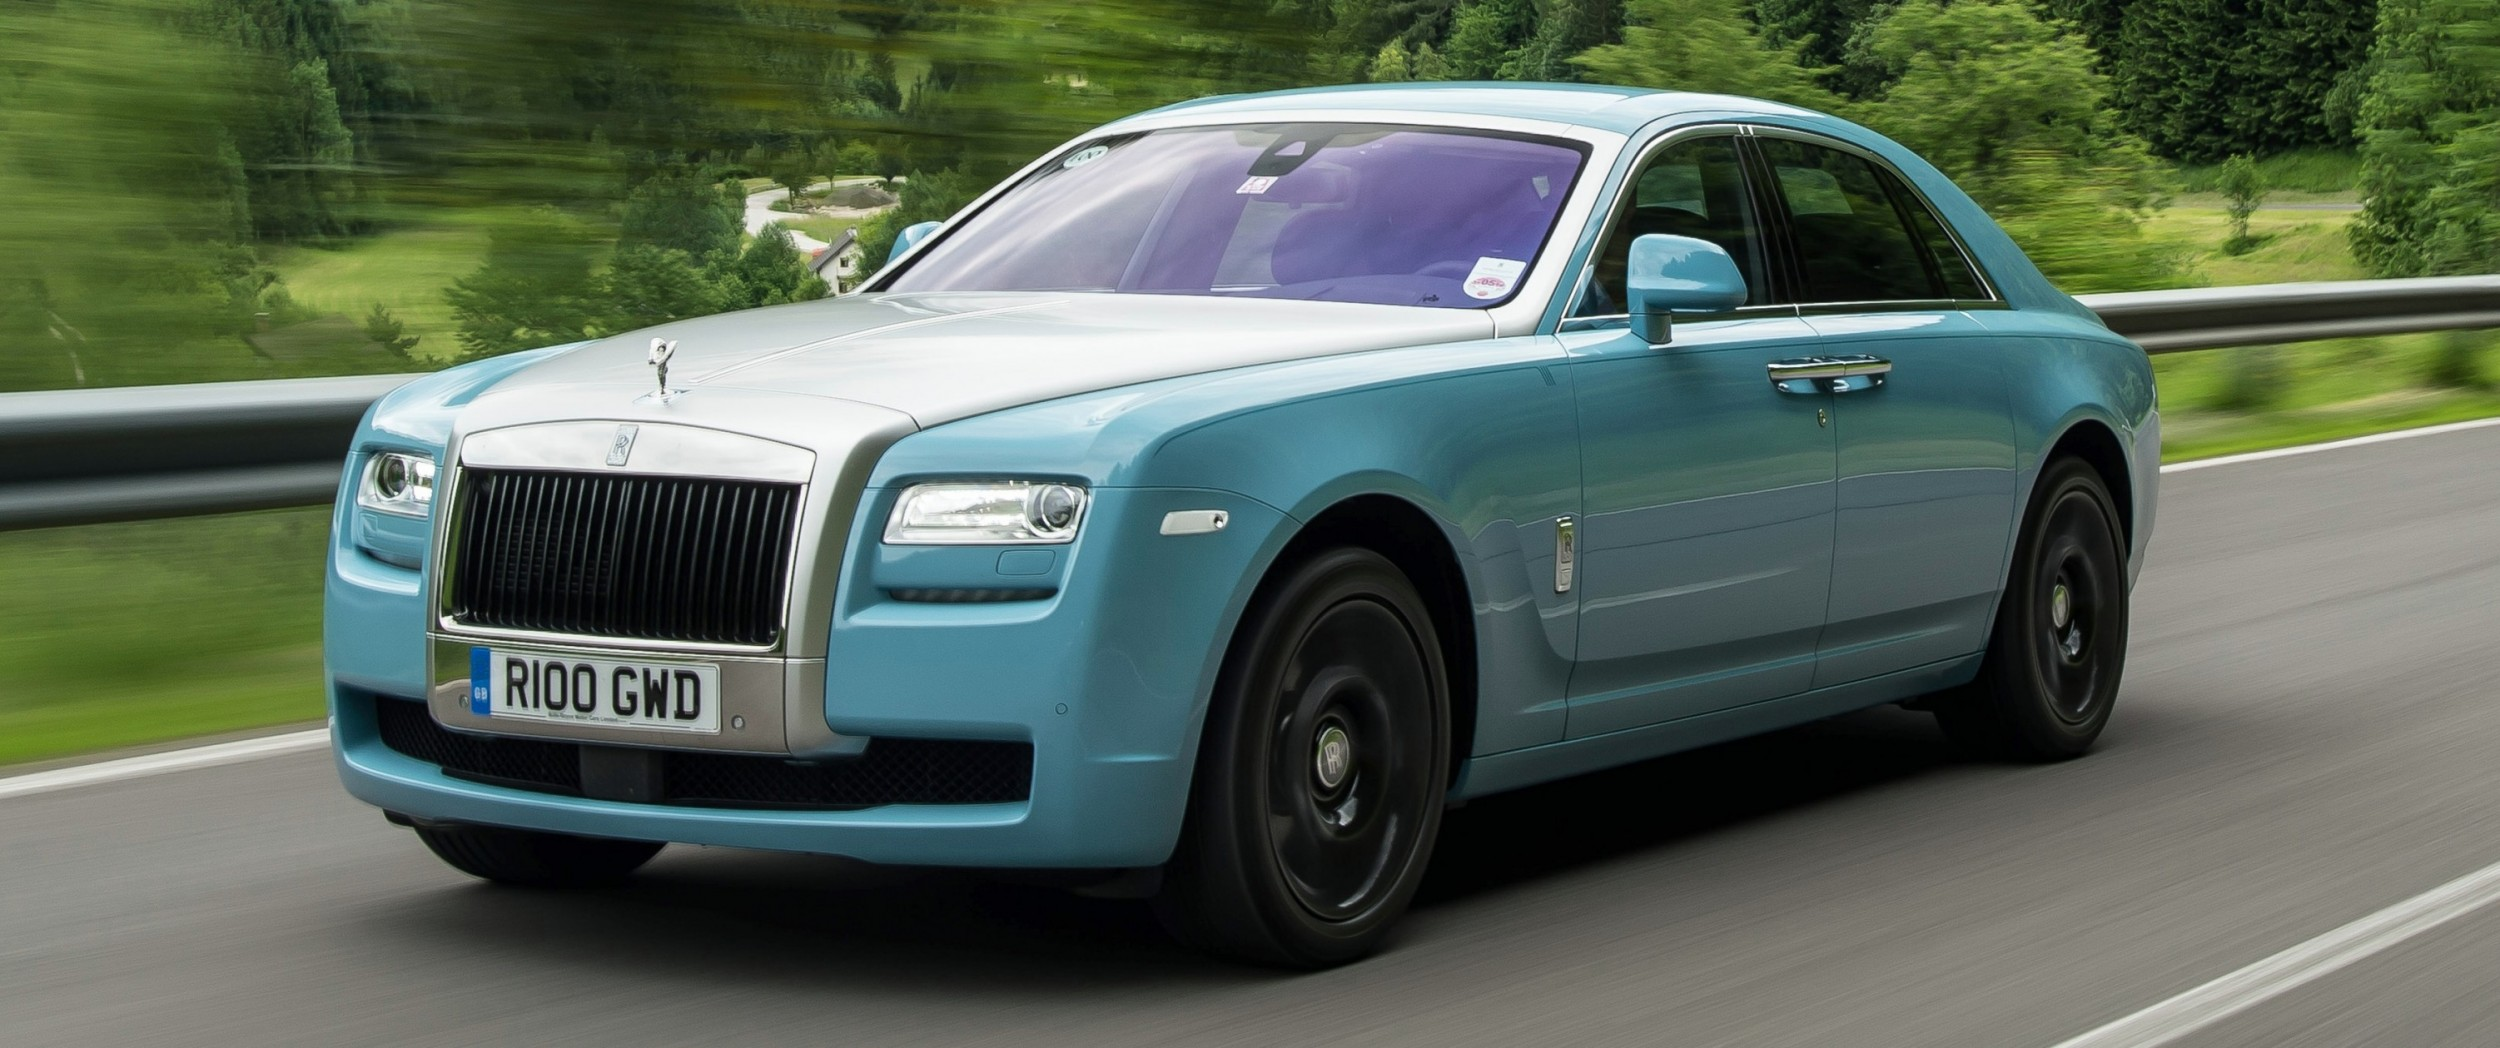 Jenson Button Wraith-ing to WIN! Official Rolls-Royce ...